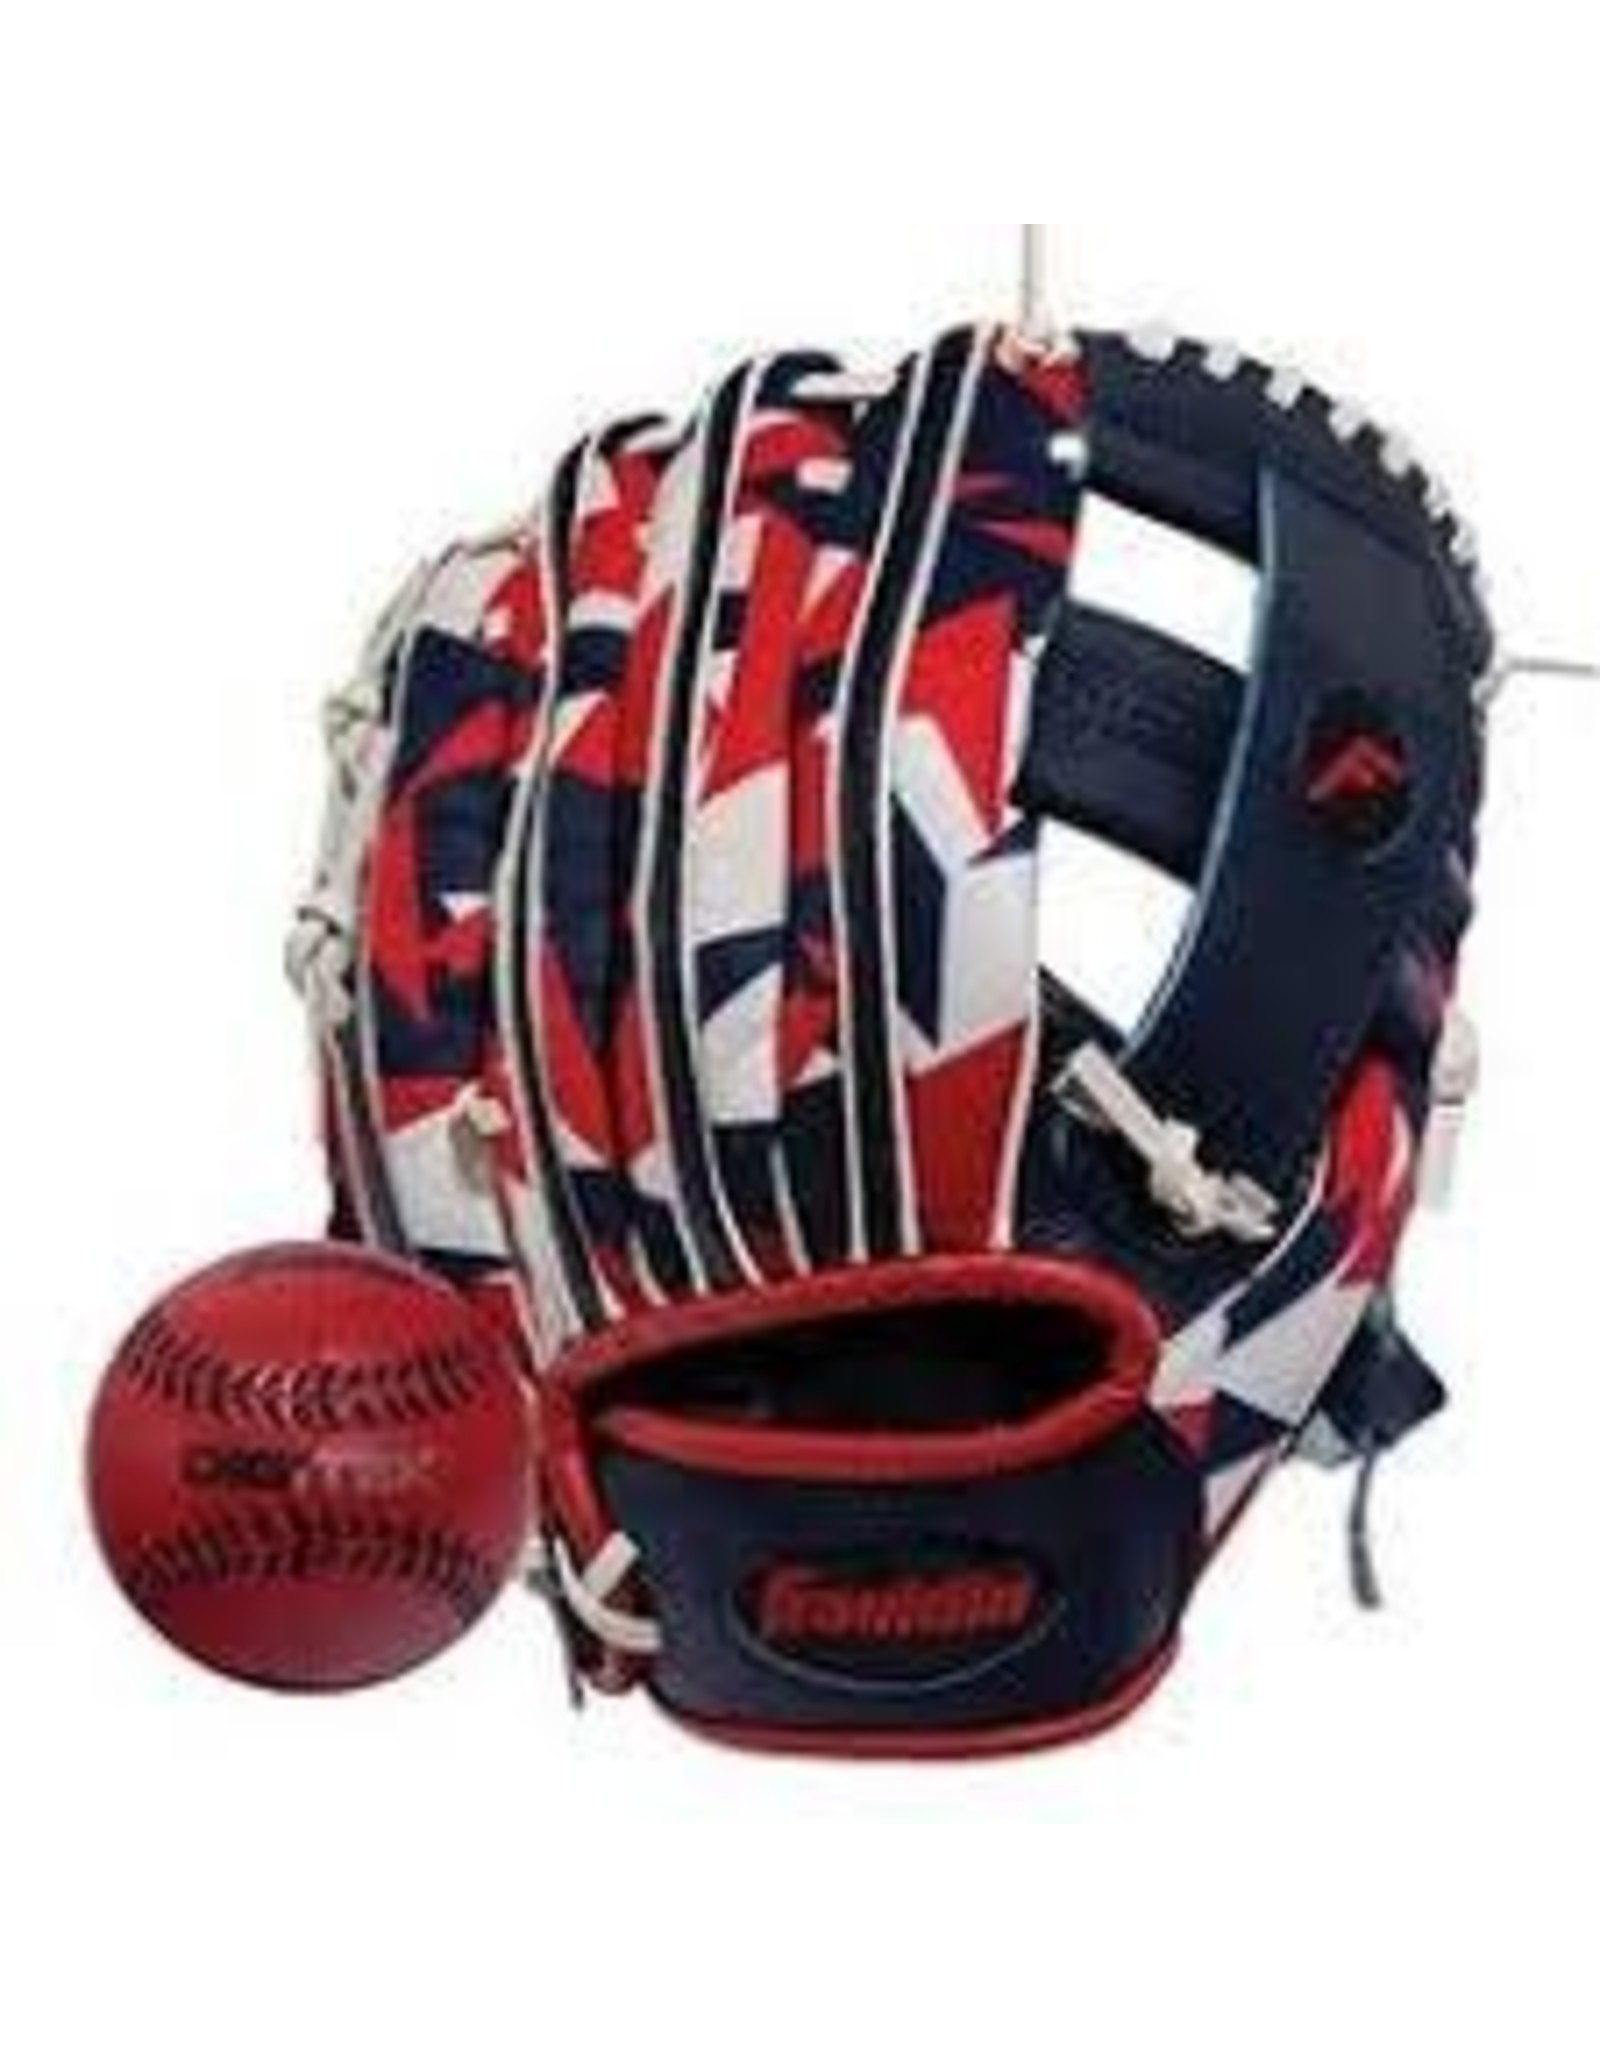 Franklin - RTP PERFORMANCE 9,5 DIGI BBG REG W/BALL